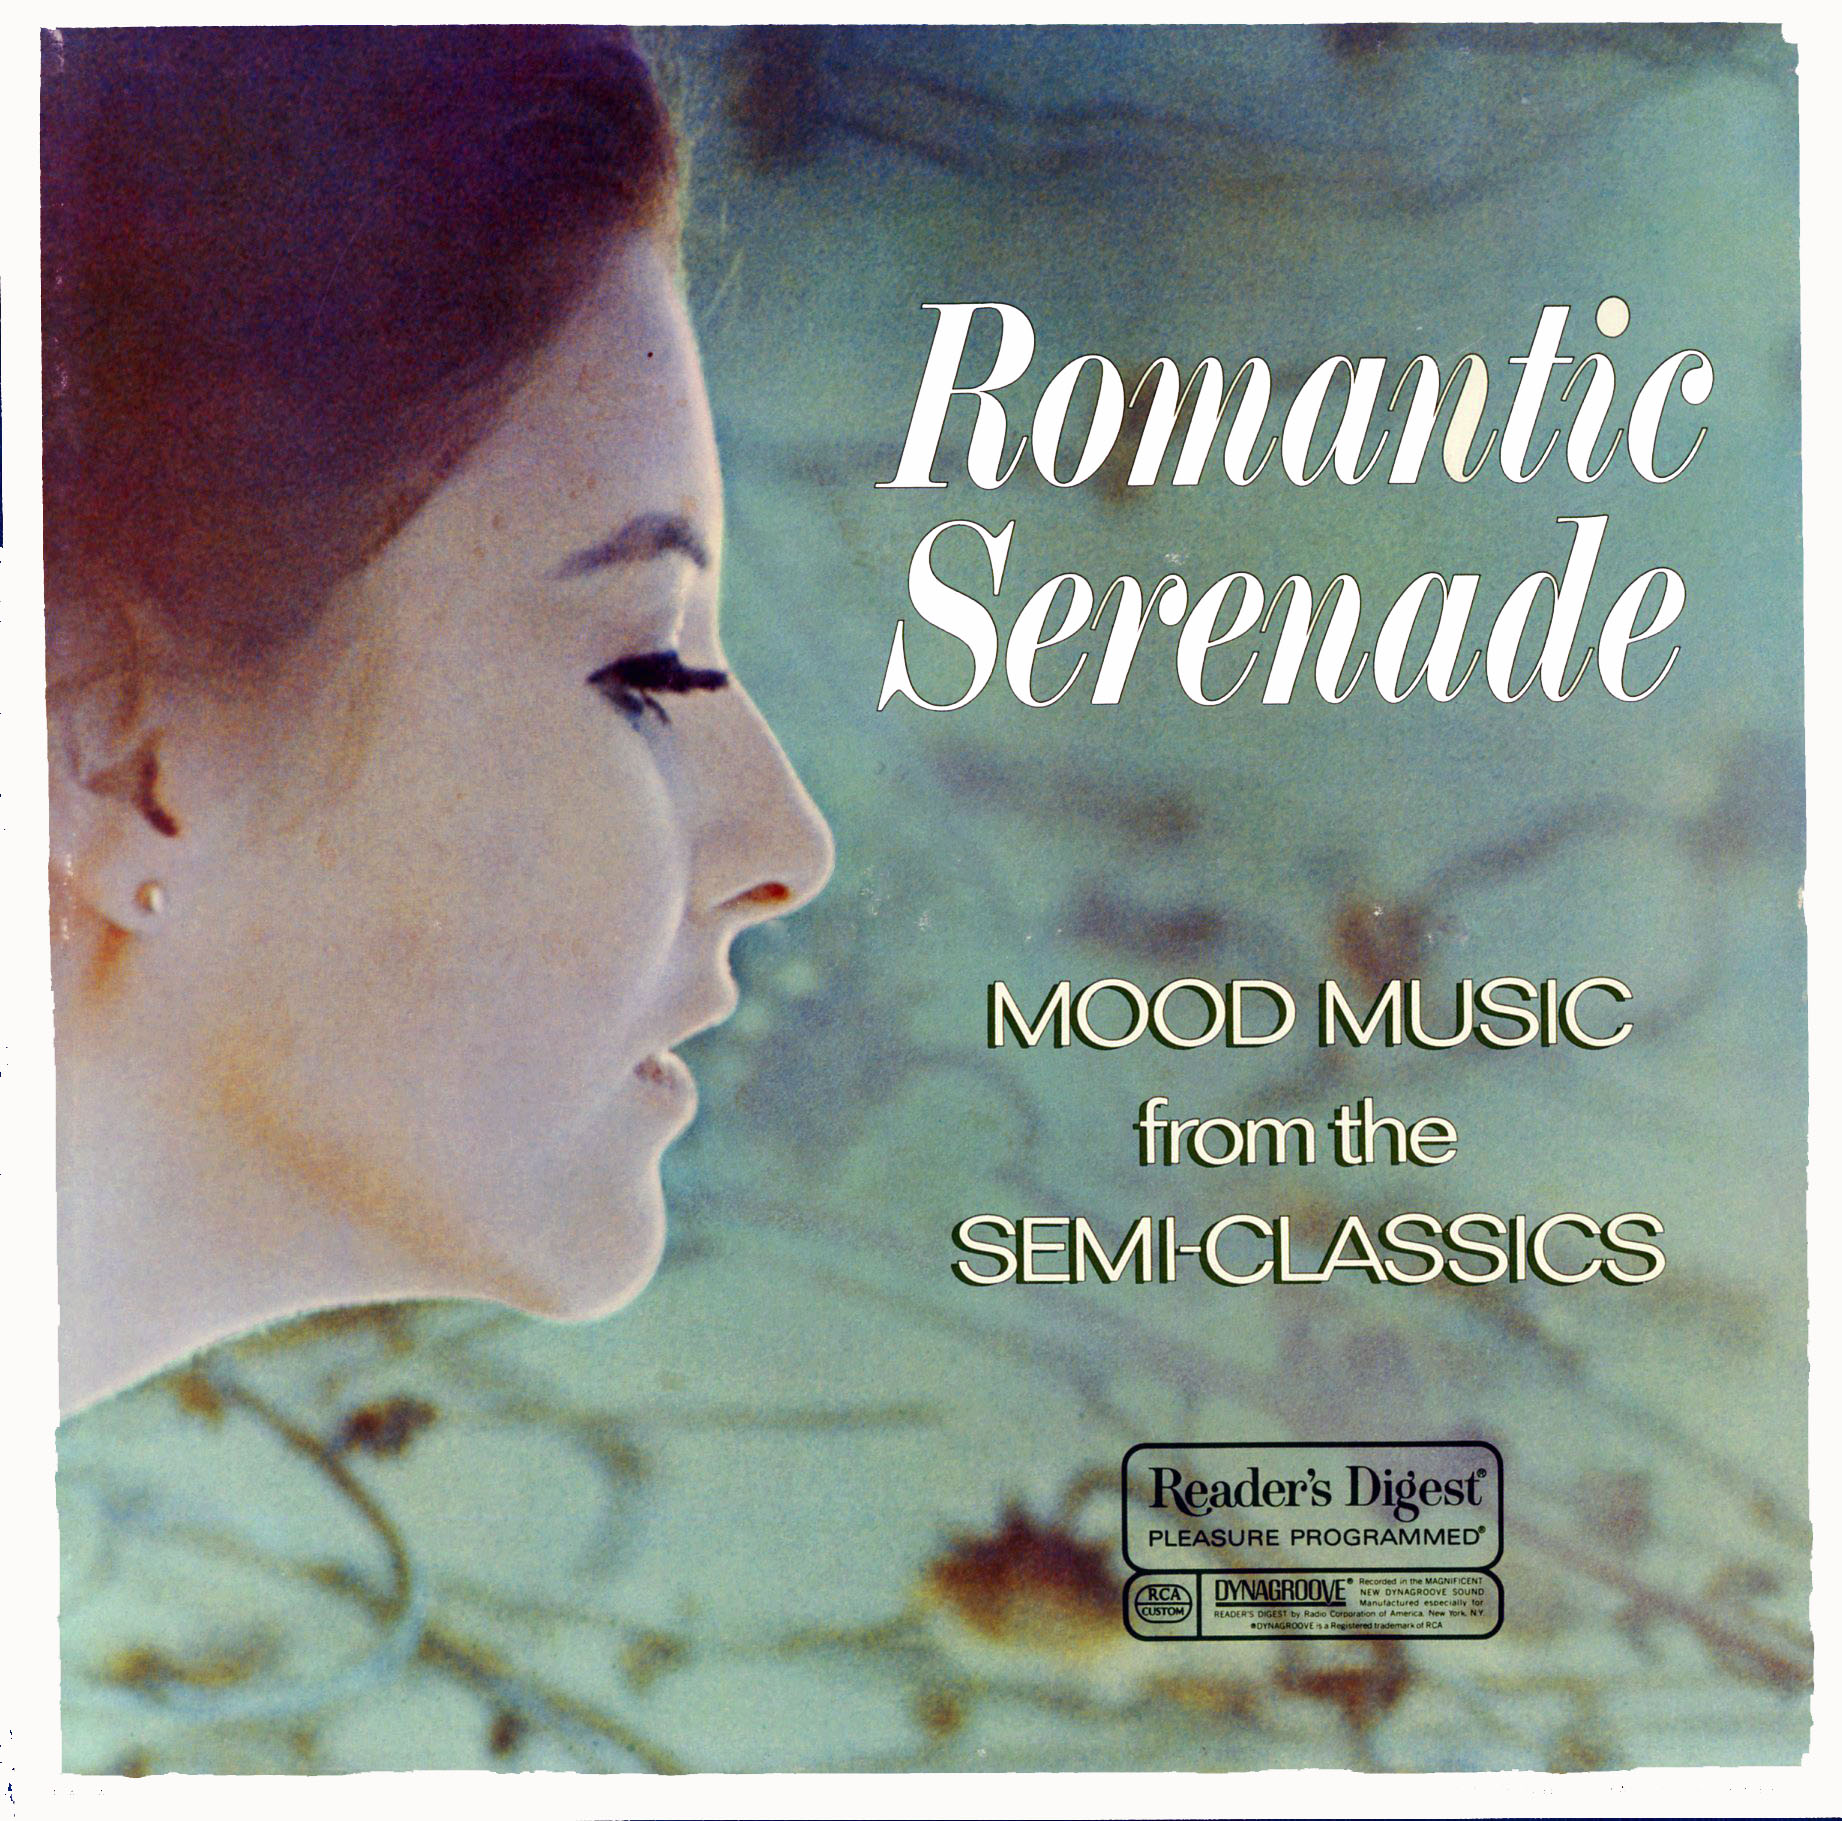 RDA81A - Romantic Serenade Mood Music from the Semi Classics on CD